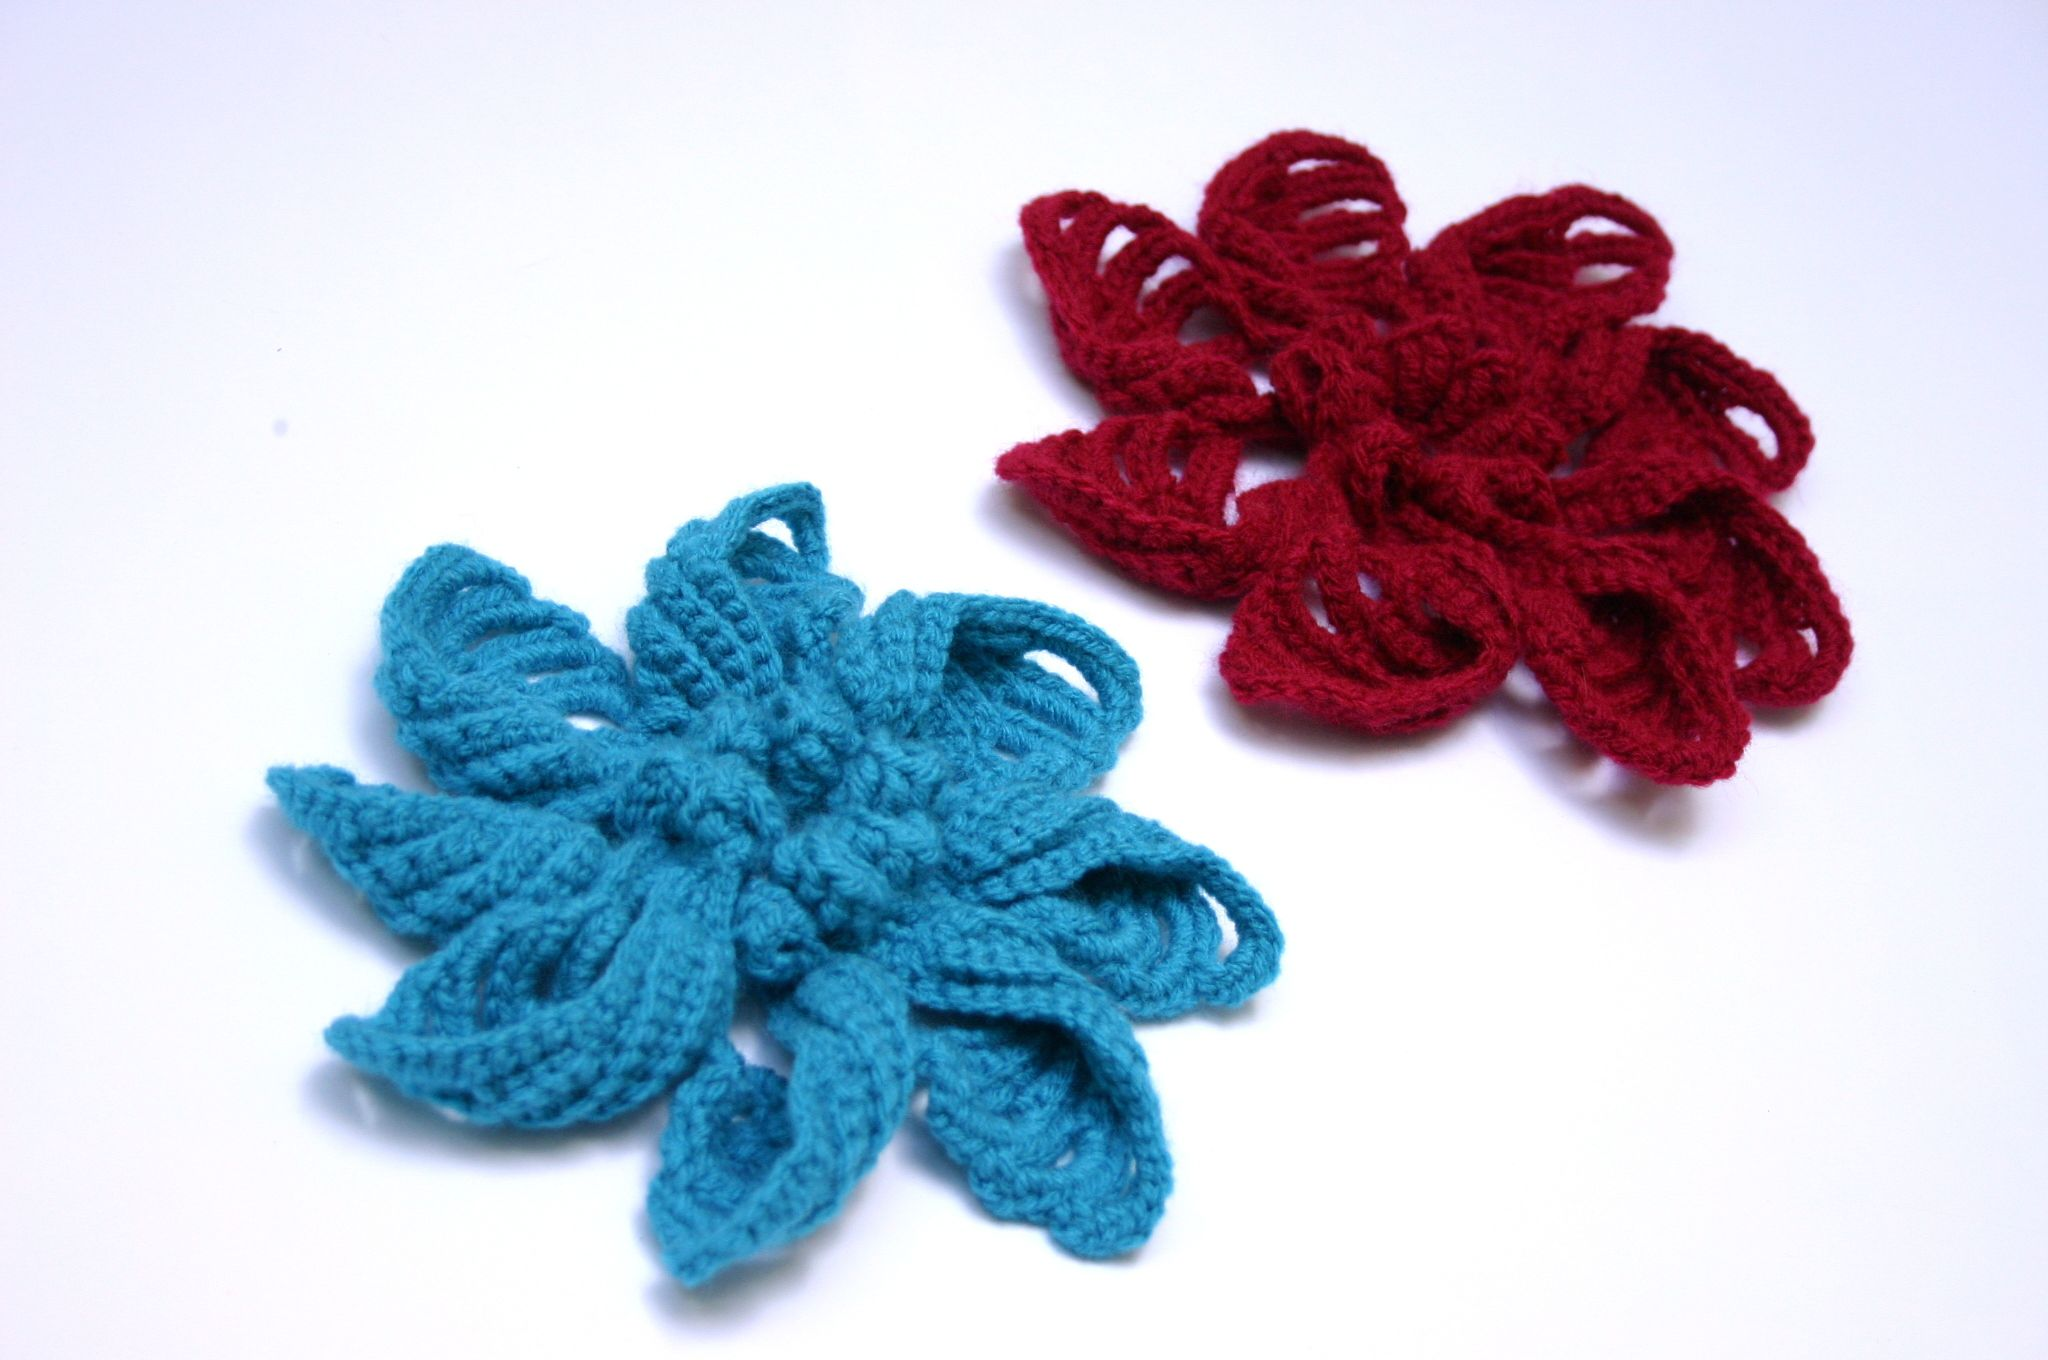 handmade boho flower brooch lace yarn pattern jewelry crochet casual patches pins pinback